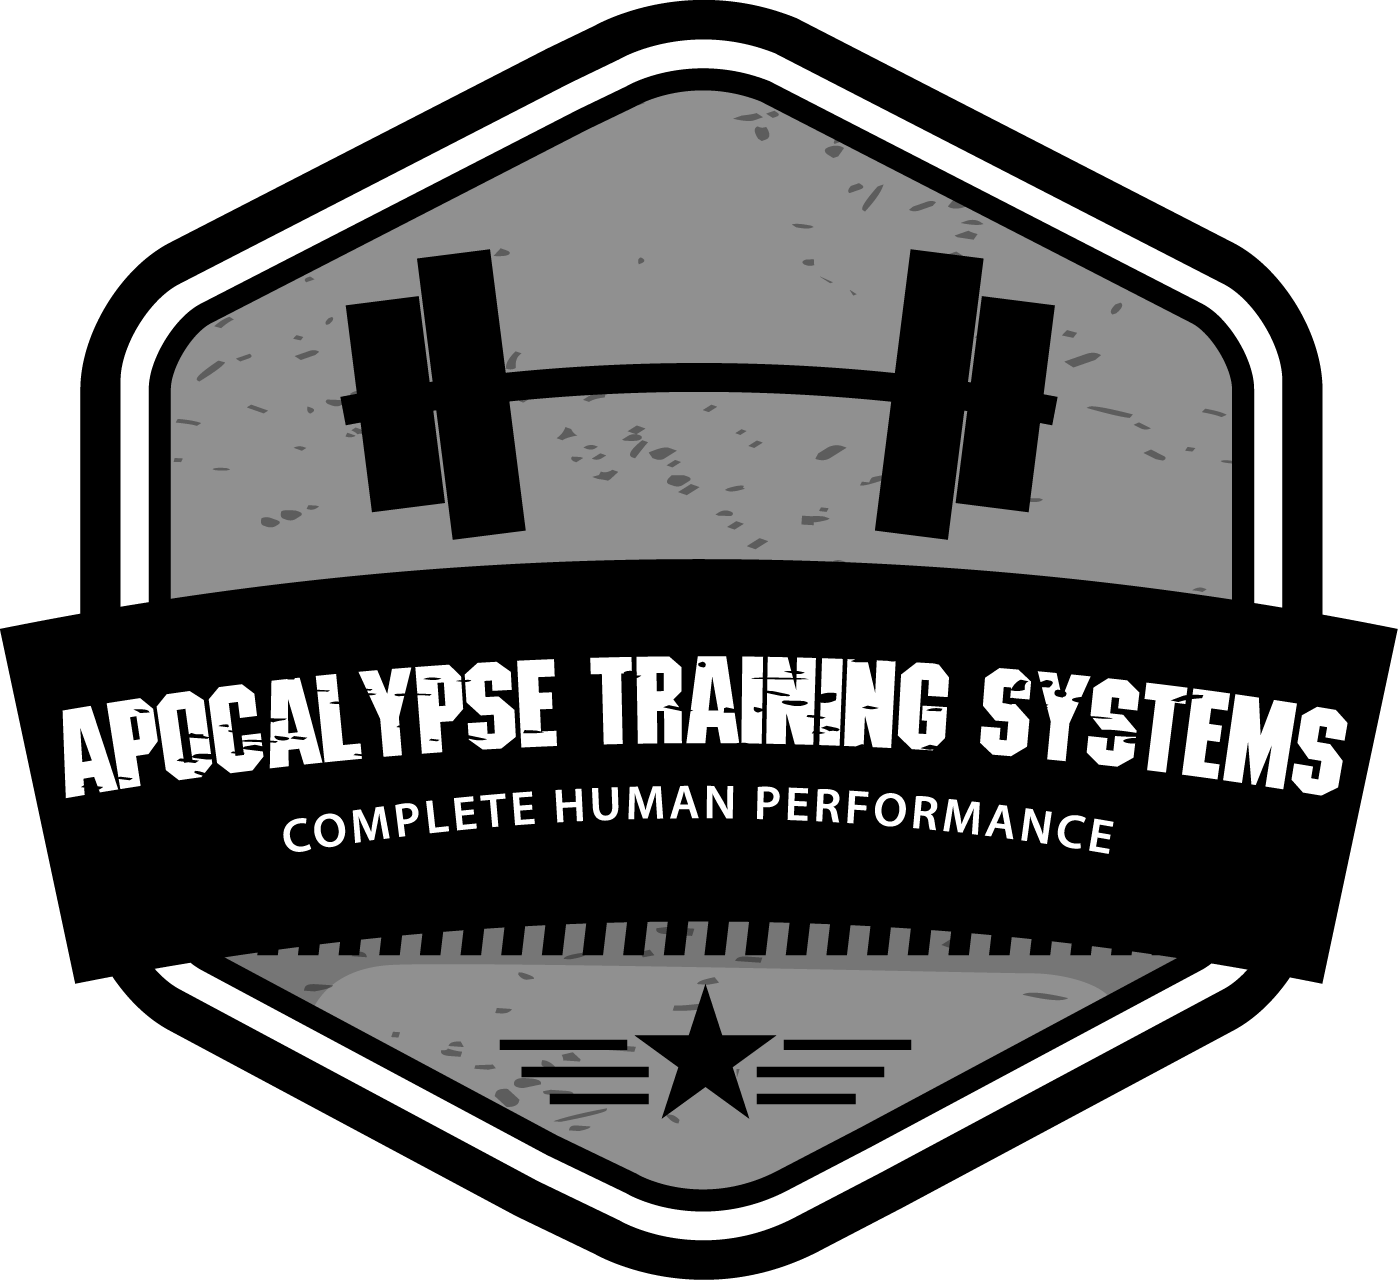 News transparent lete. Apocalypse training systems